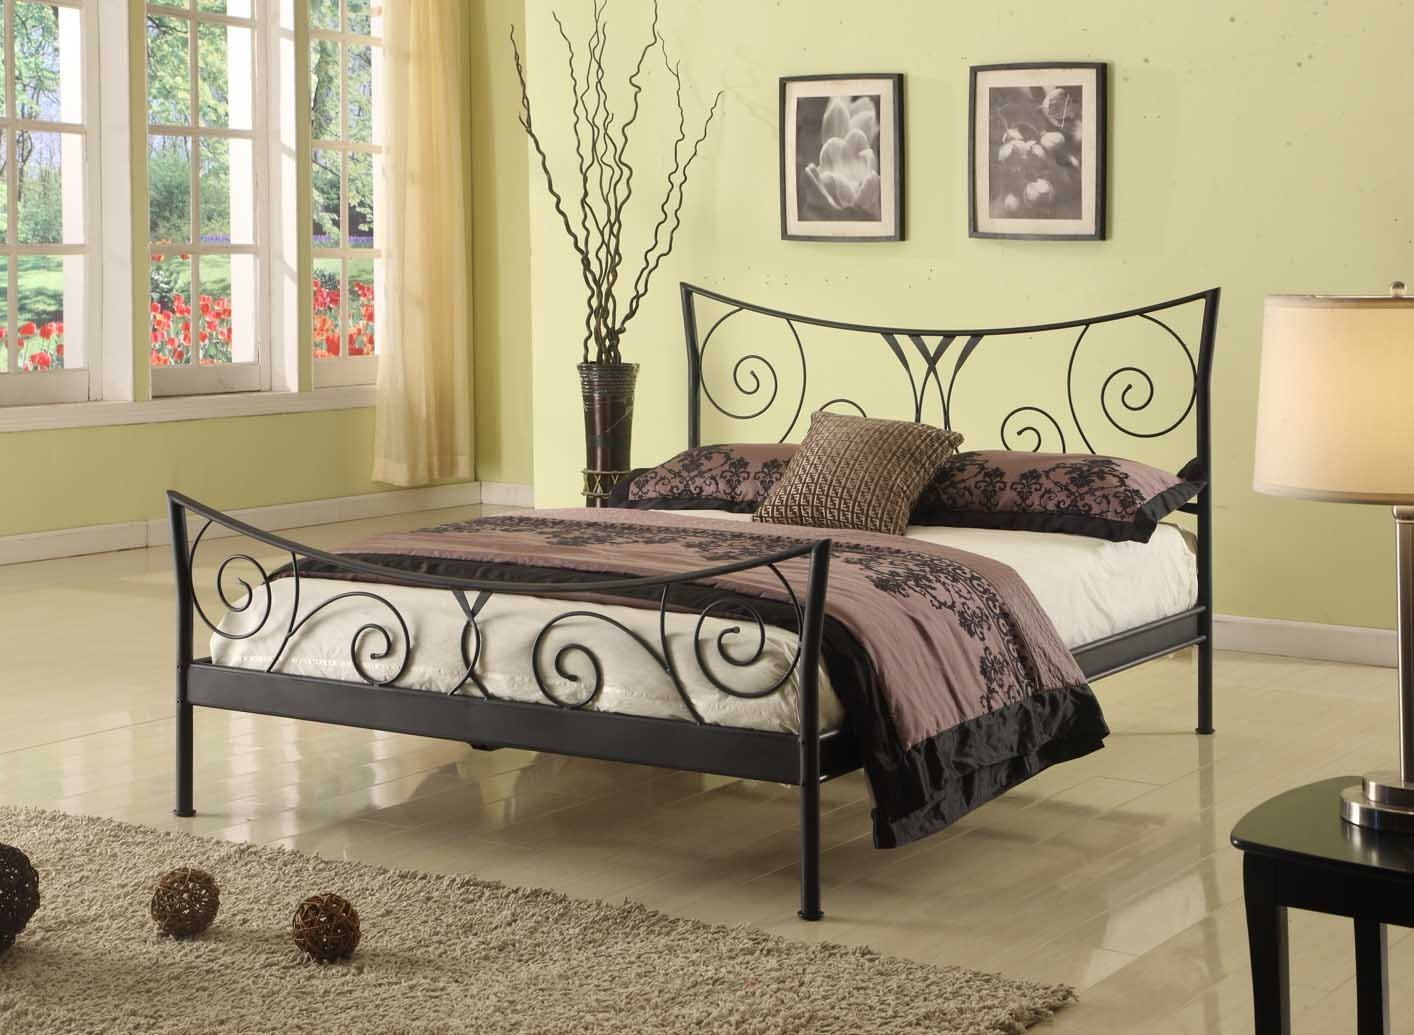 Queen Beds Metal: Black Metal Queen Size Bed Headboard Footboard Rails